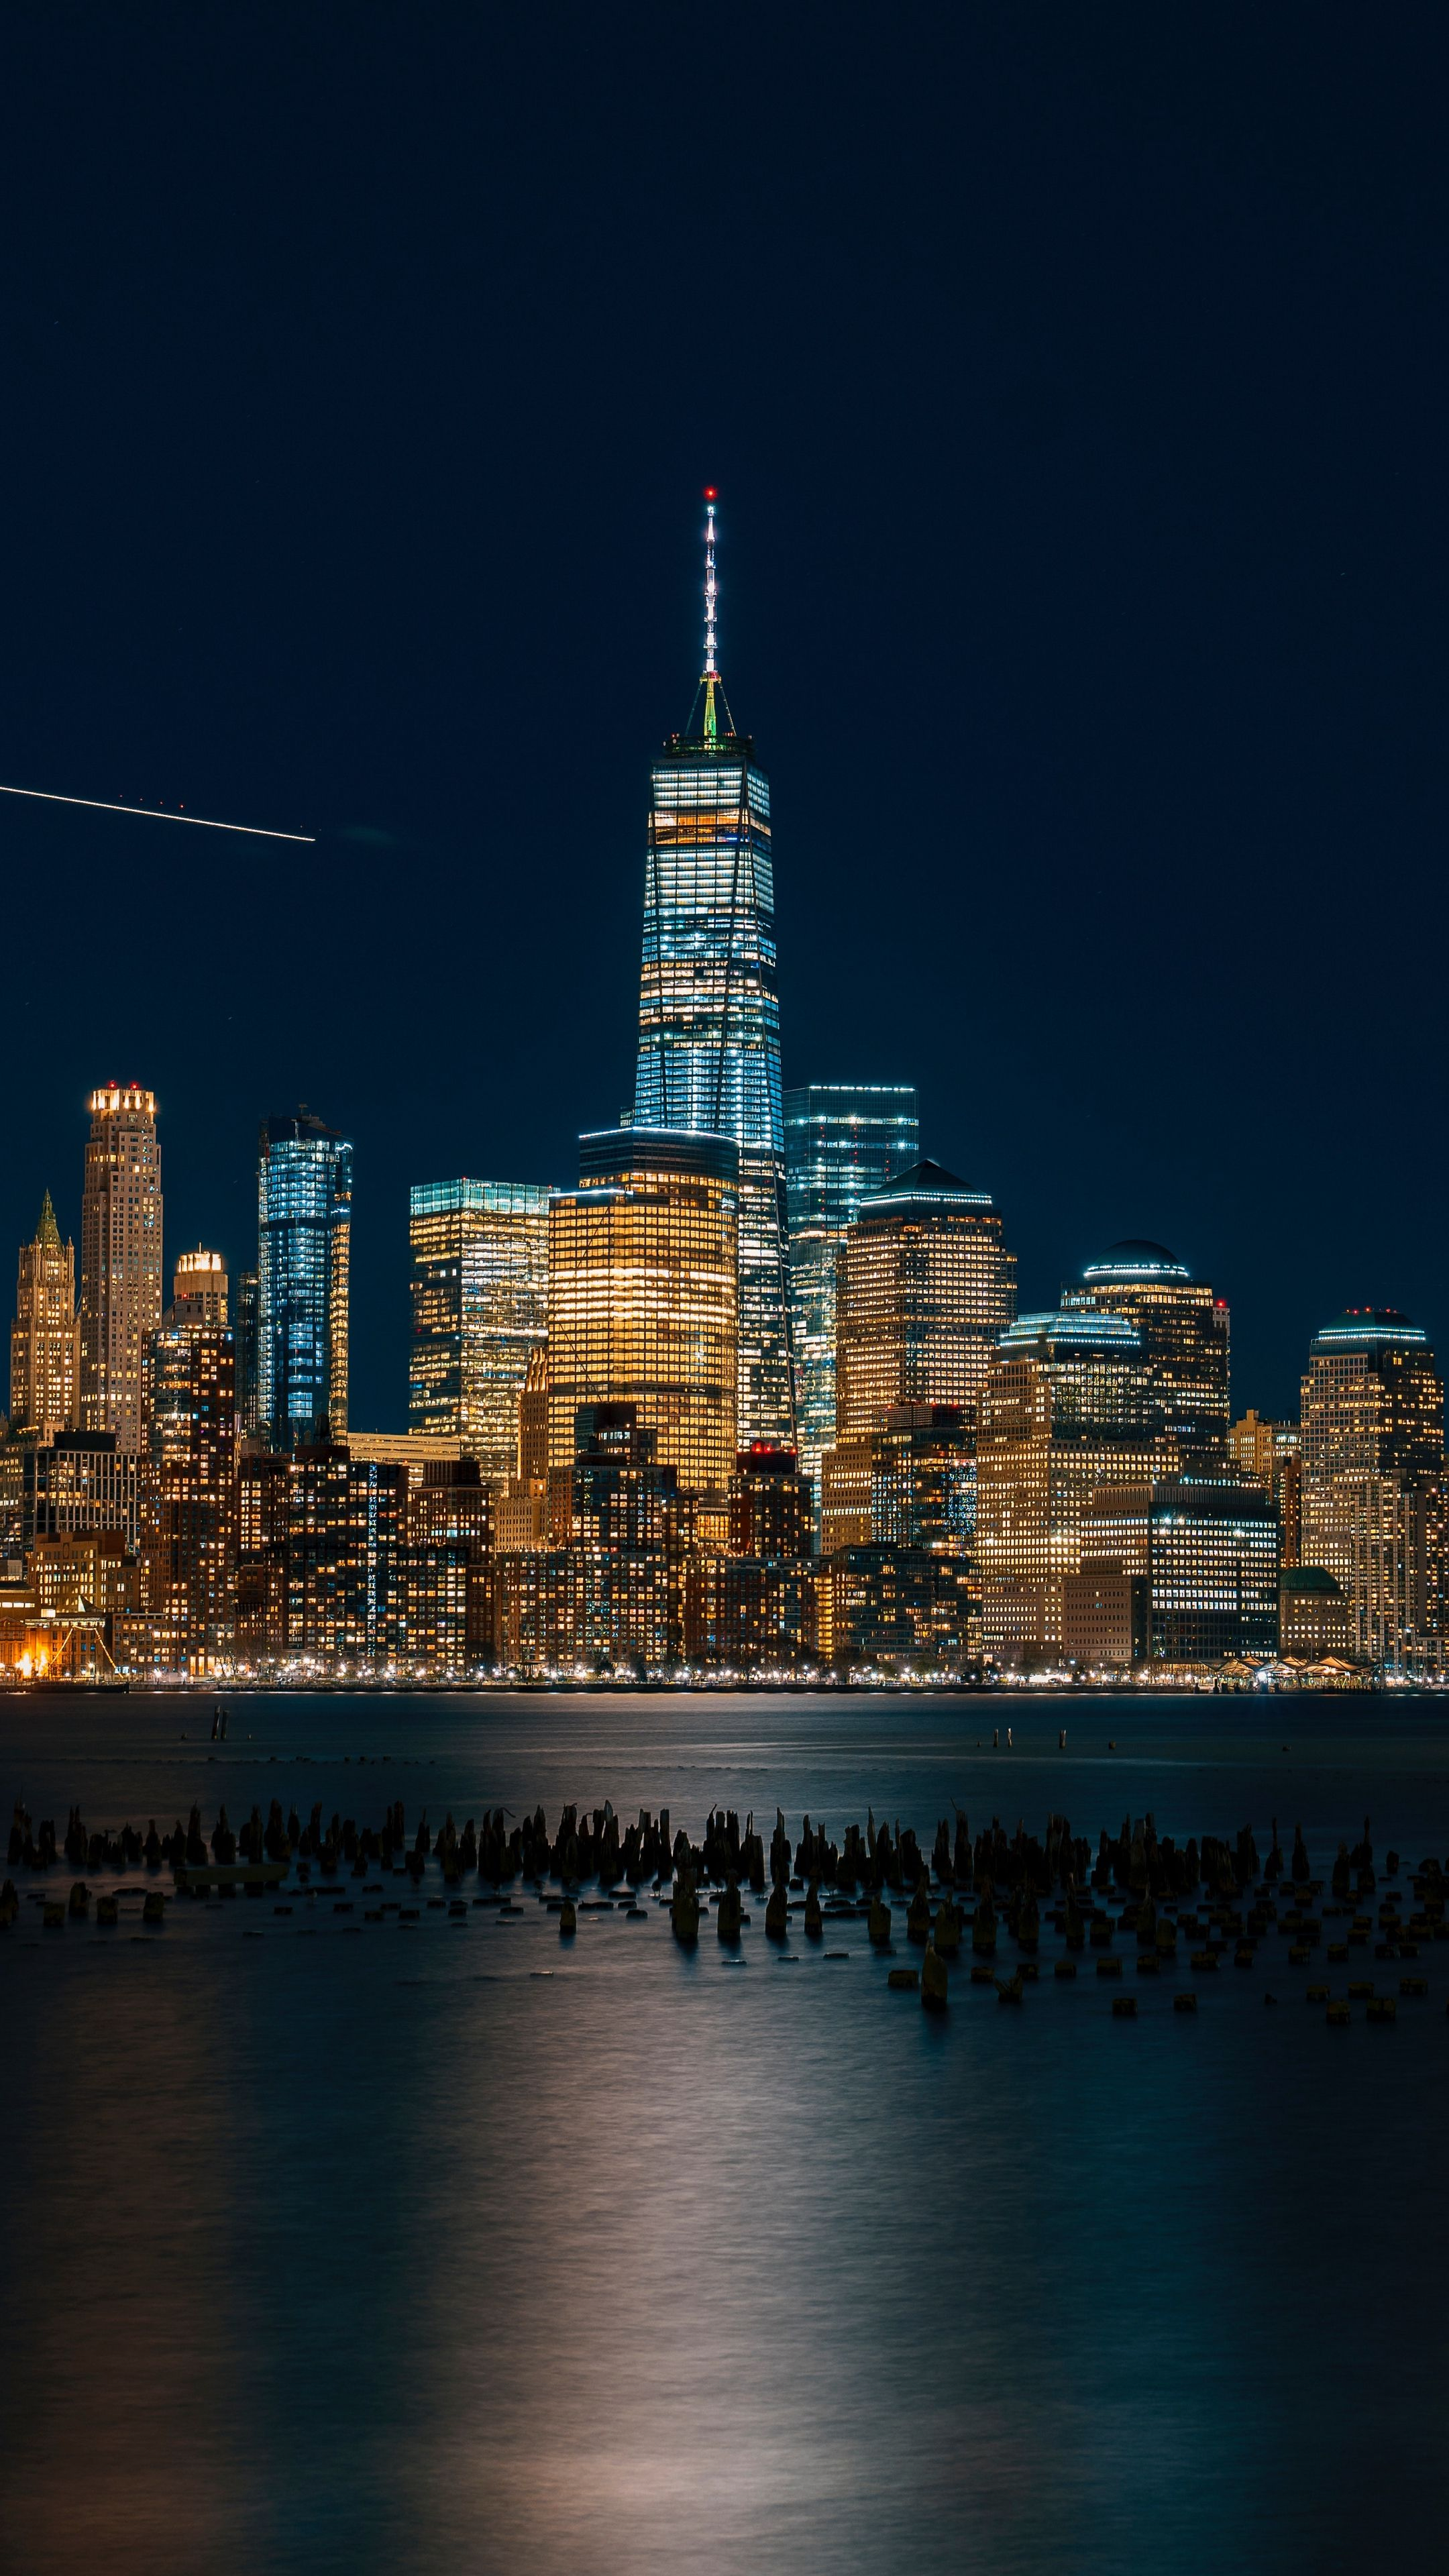 Places newyork usa nightcity wallpapers hd 4k